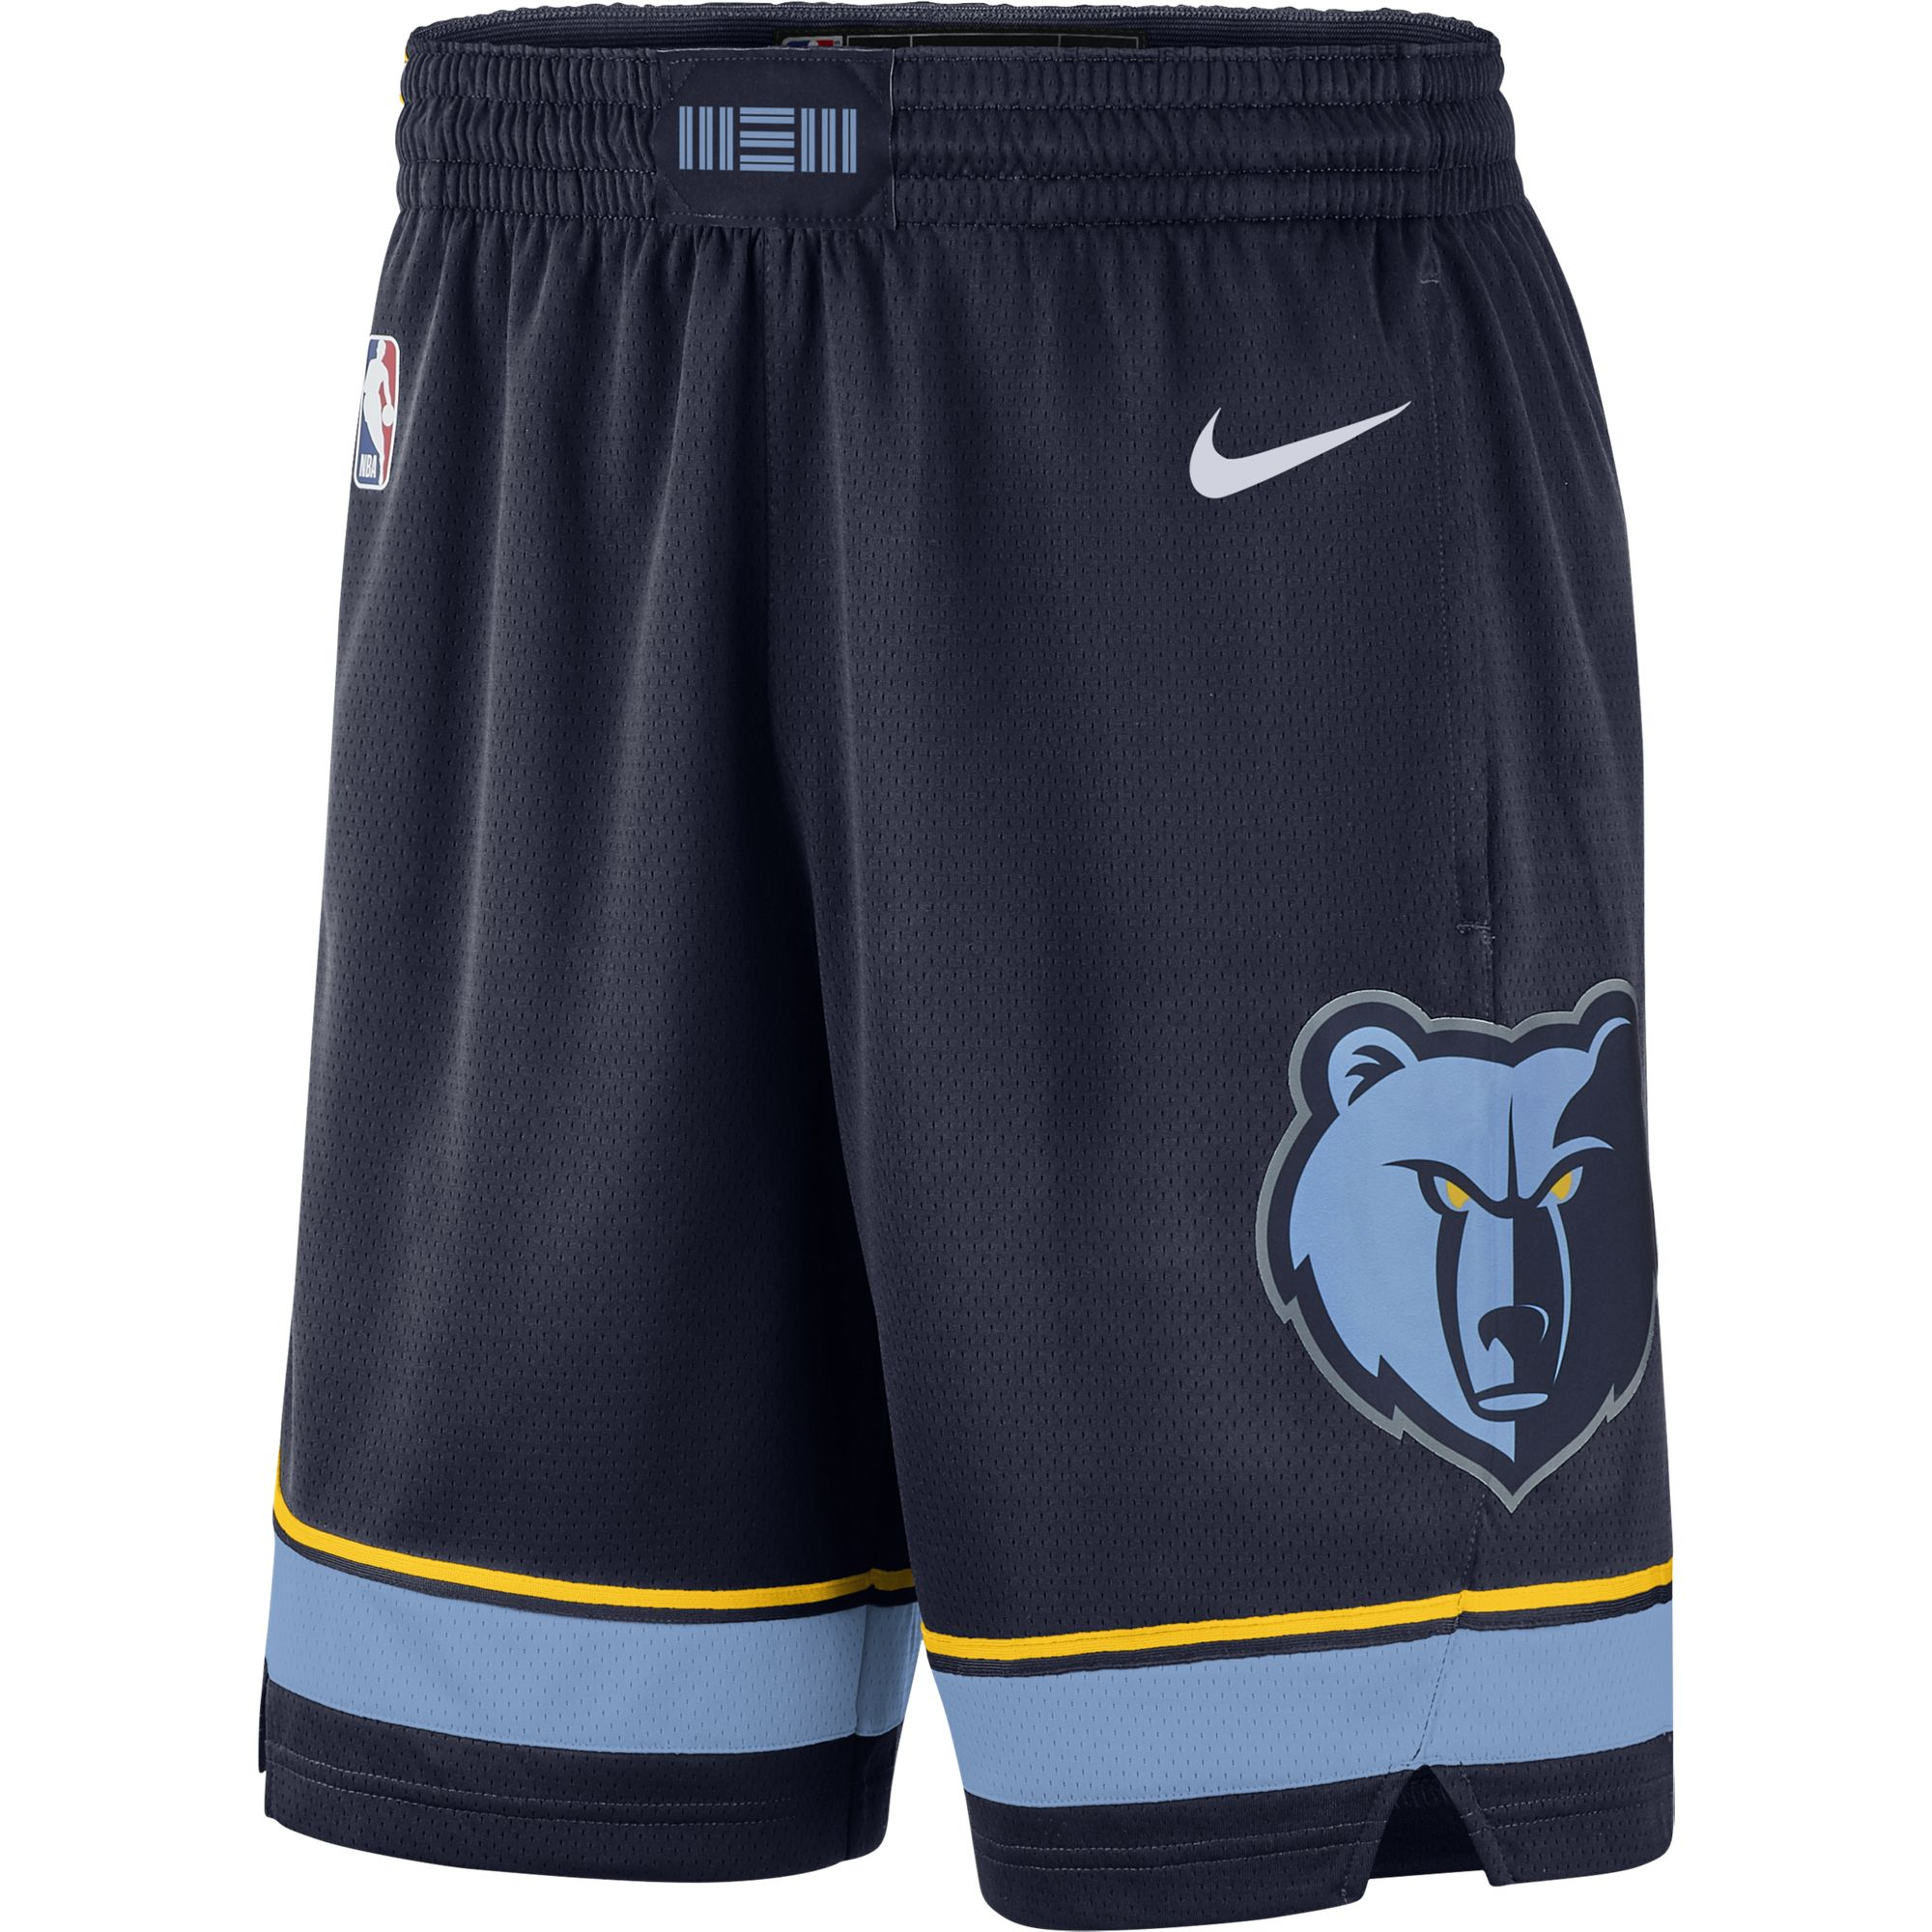 Memphis Grizzlies Nike 2019/20 Icon Edition Swingman Shorts - Navy